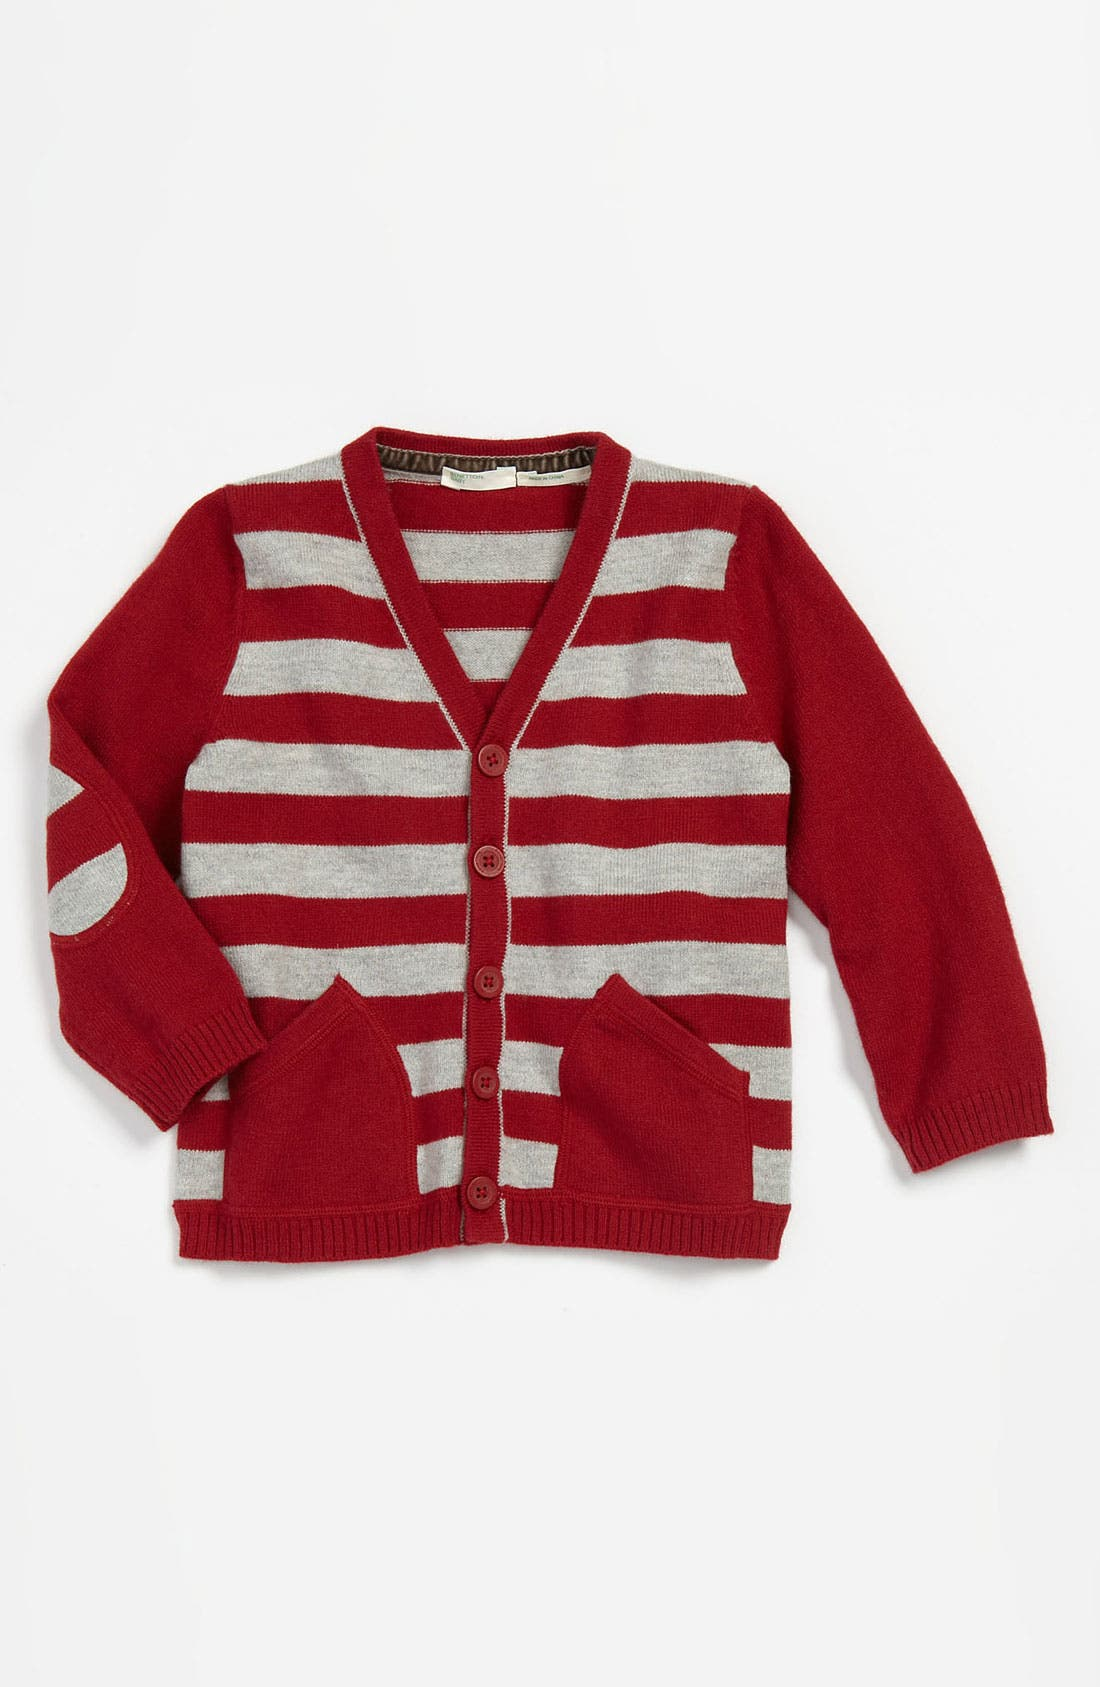 Alternate Image 1 Selected - United Colors of Benetton Kids Cardigan (Infant)